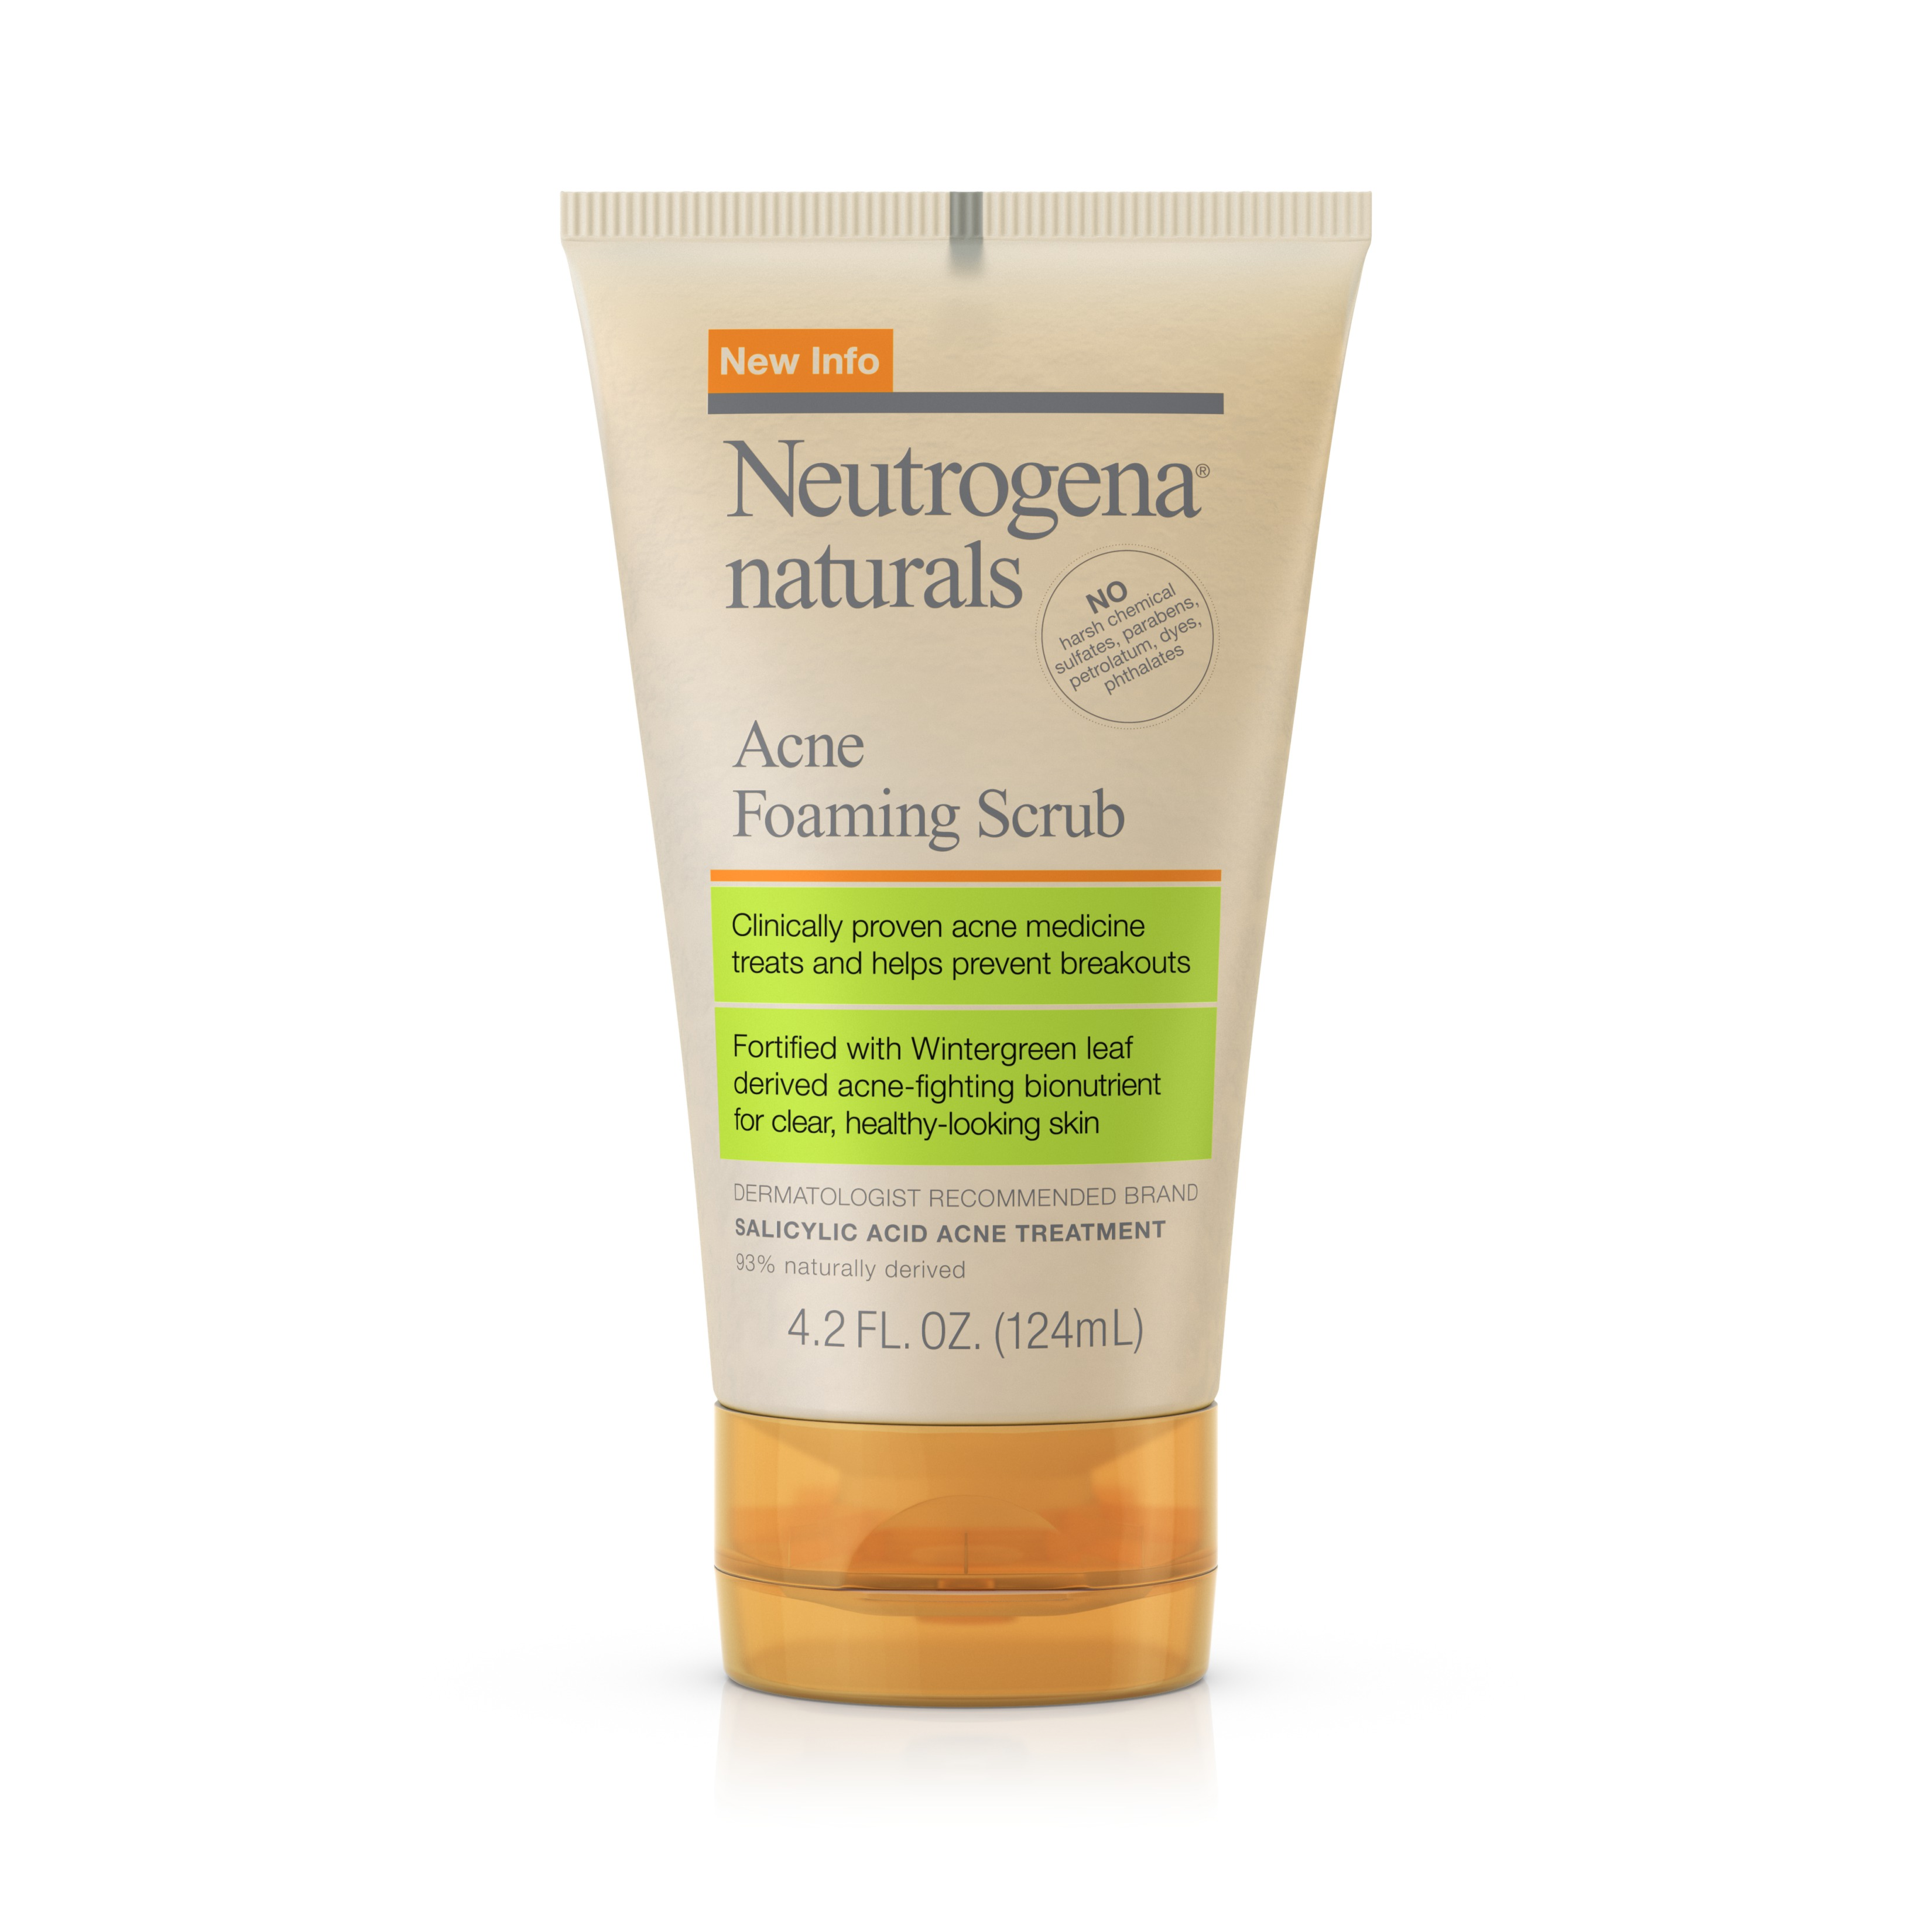 Neutrogena Naturals Acne Foaming Scrub, 4.2 Oz - Walmart.com